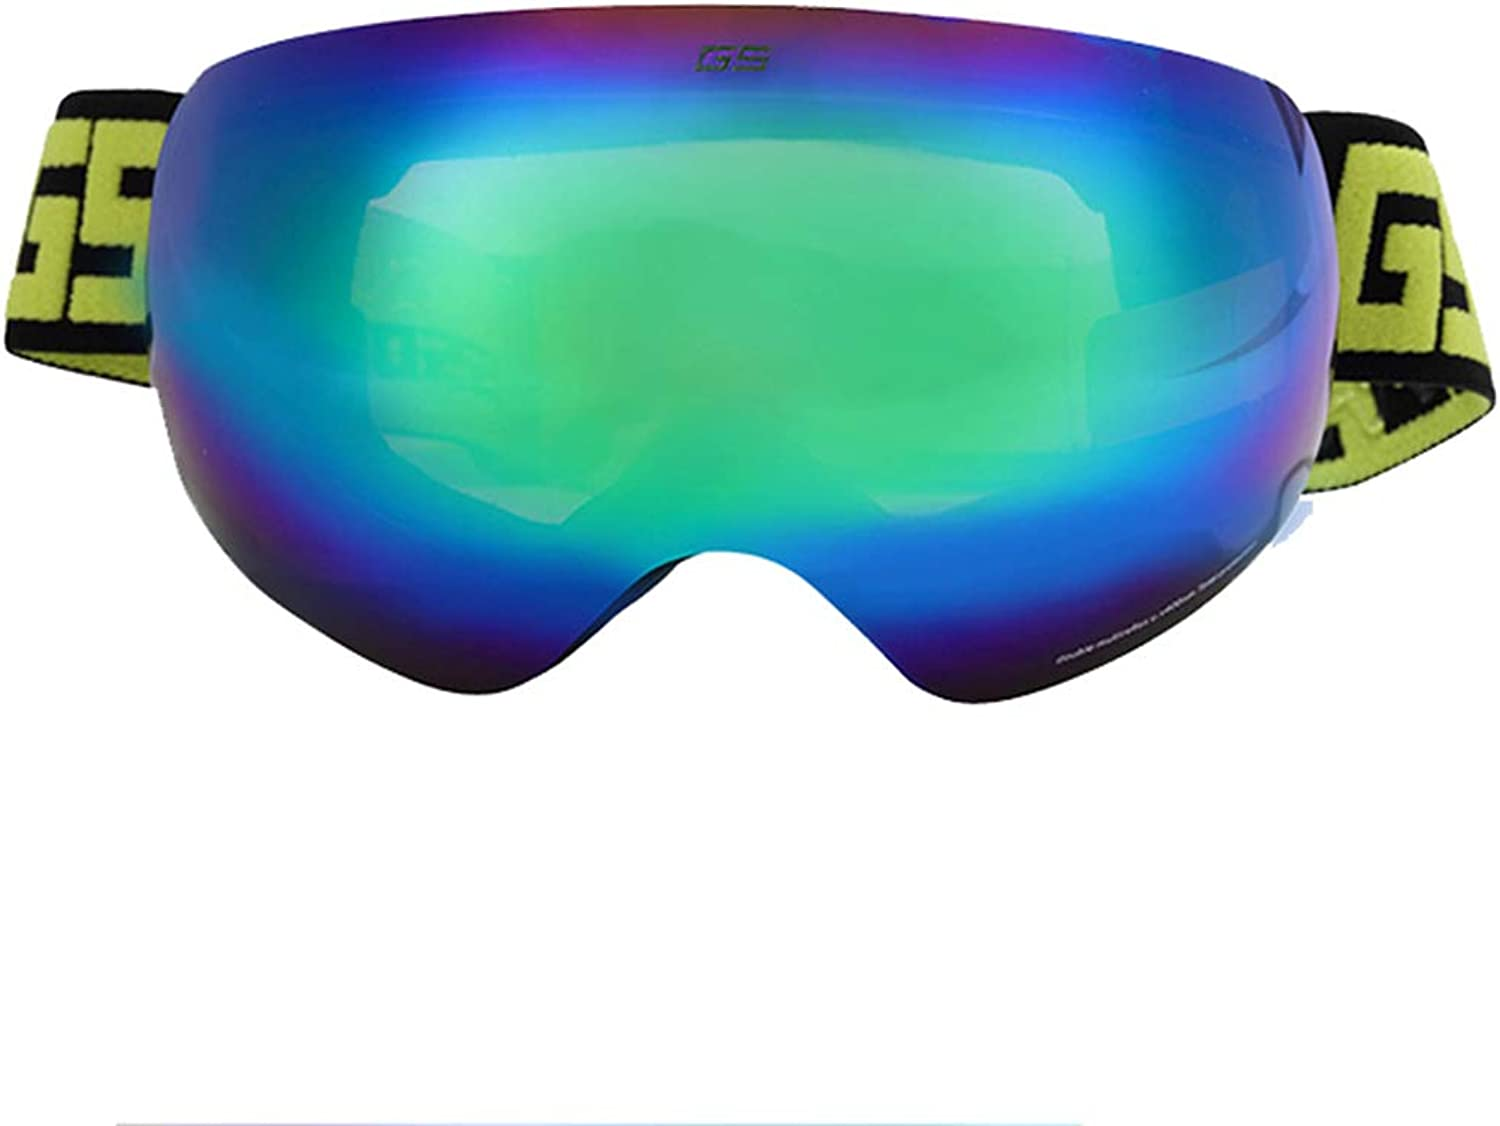 Yxx max Ski Goggles Men And Women Double-layer Anti-fog And Windproof Large Spherical Single And Double Plate Goggles Winter